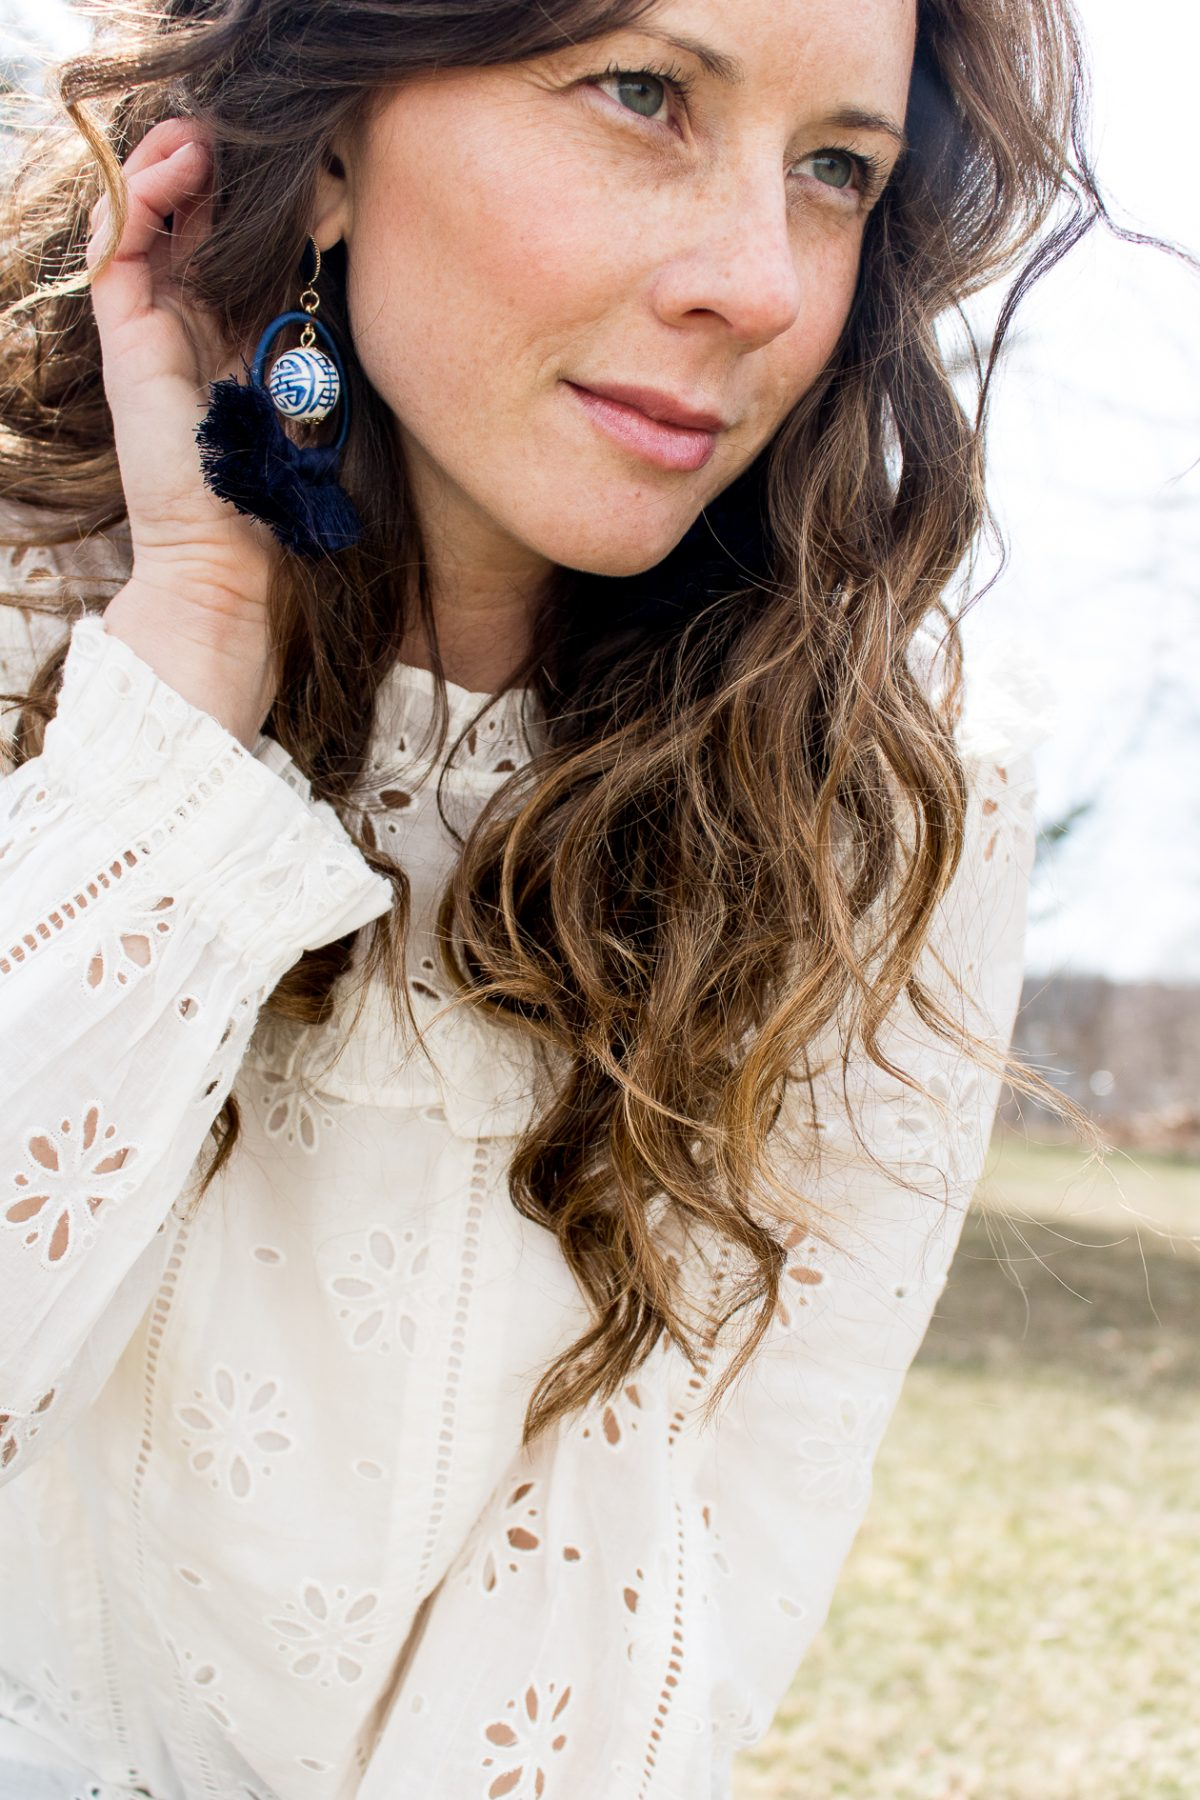 Close Up on a Woman with her hand behind her ear to show her blue and white chinoiserie tassel earrings